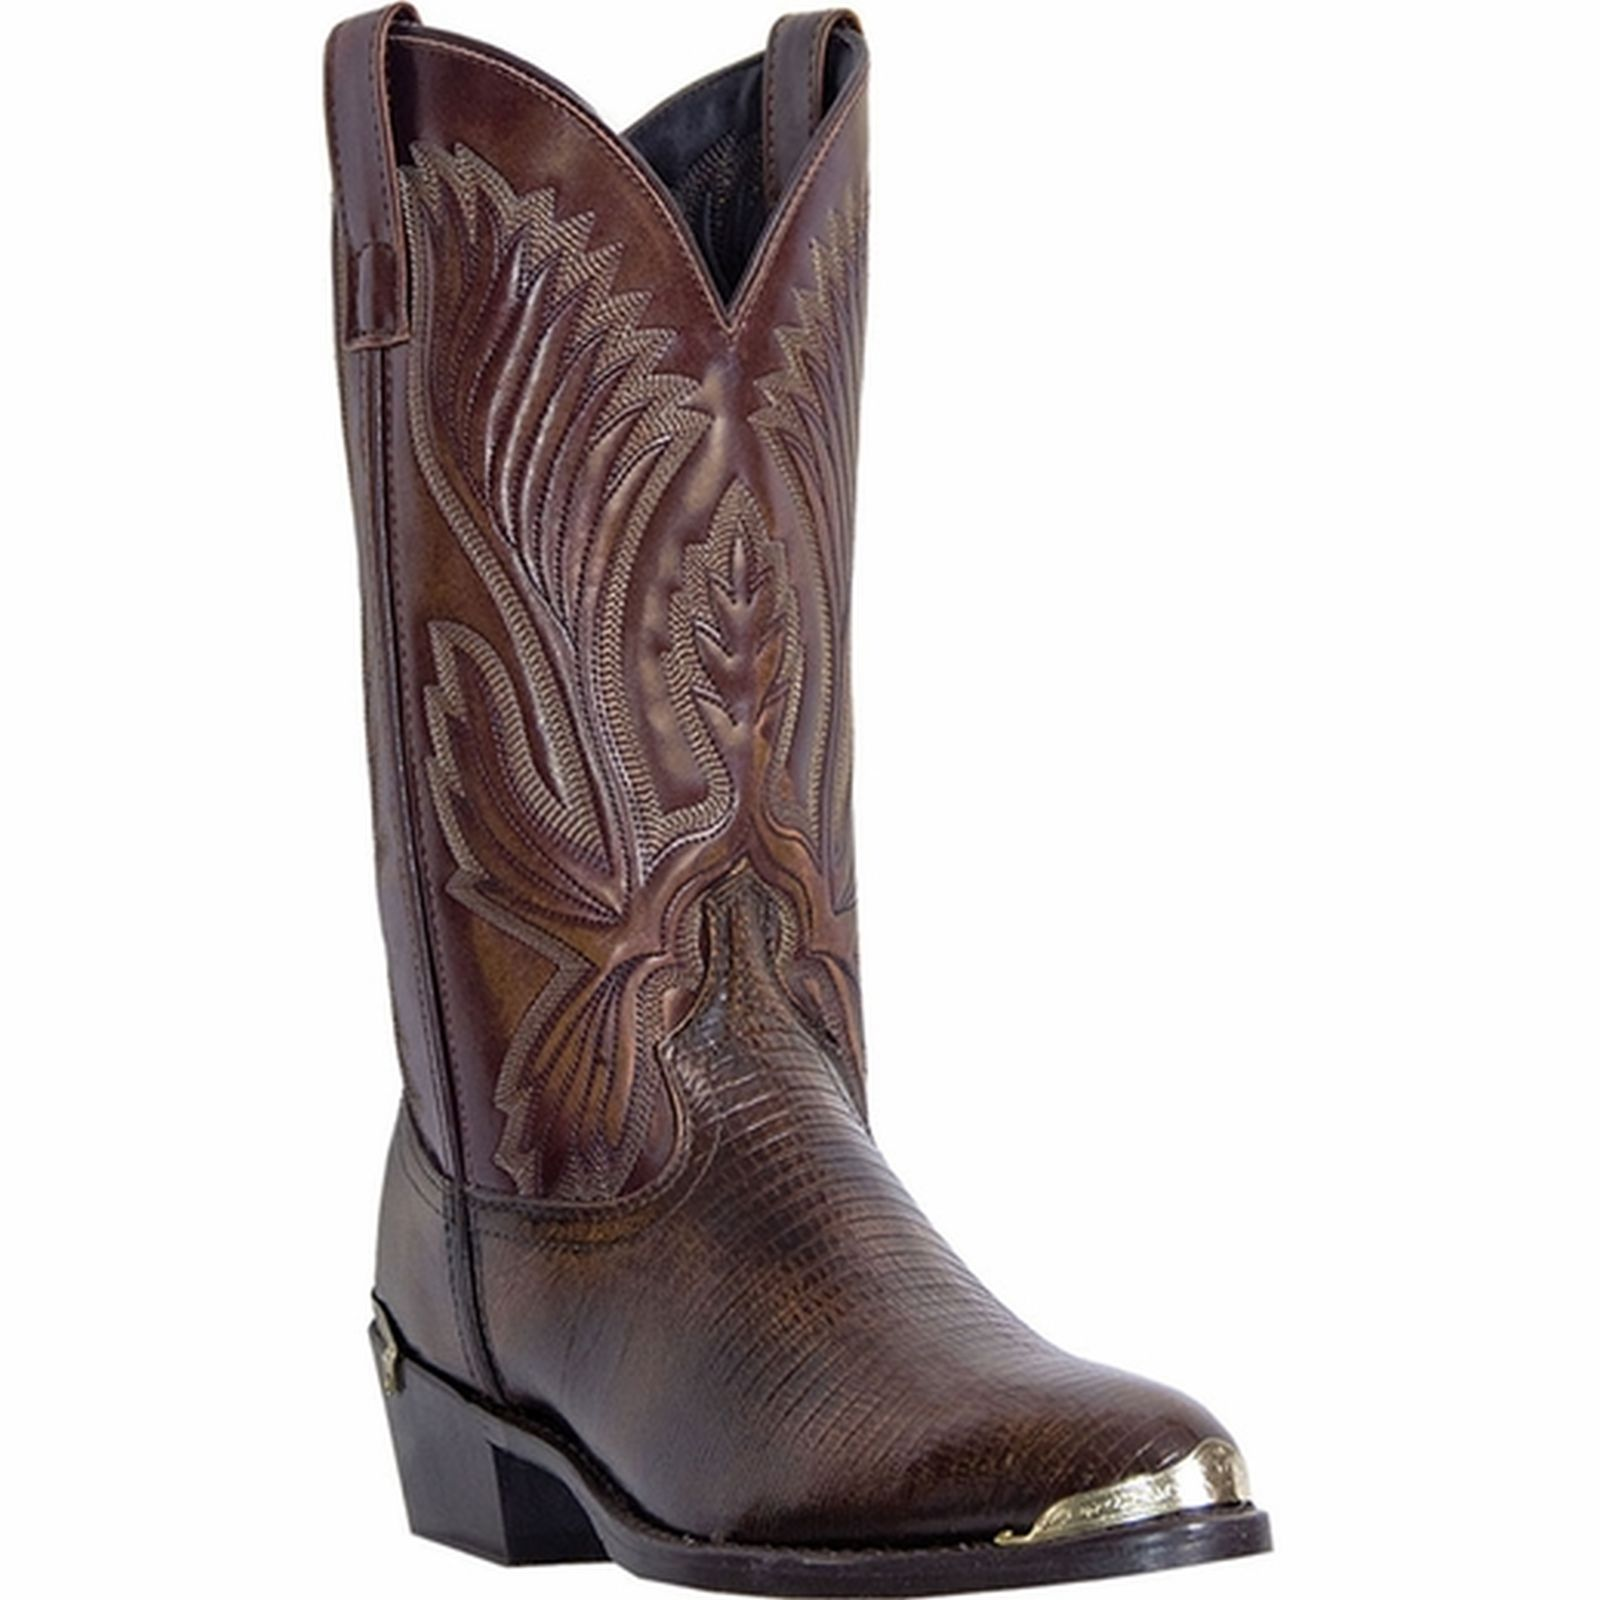 Laredo 68082 Men's Antique Tan New York Western Boots by Laredo